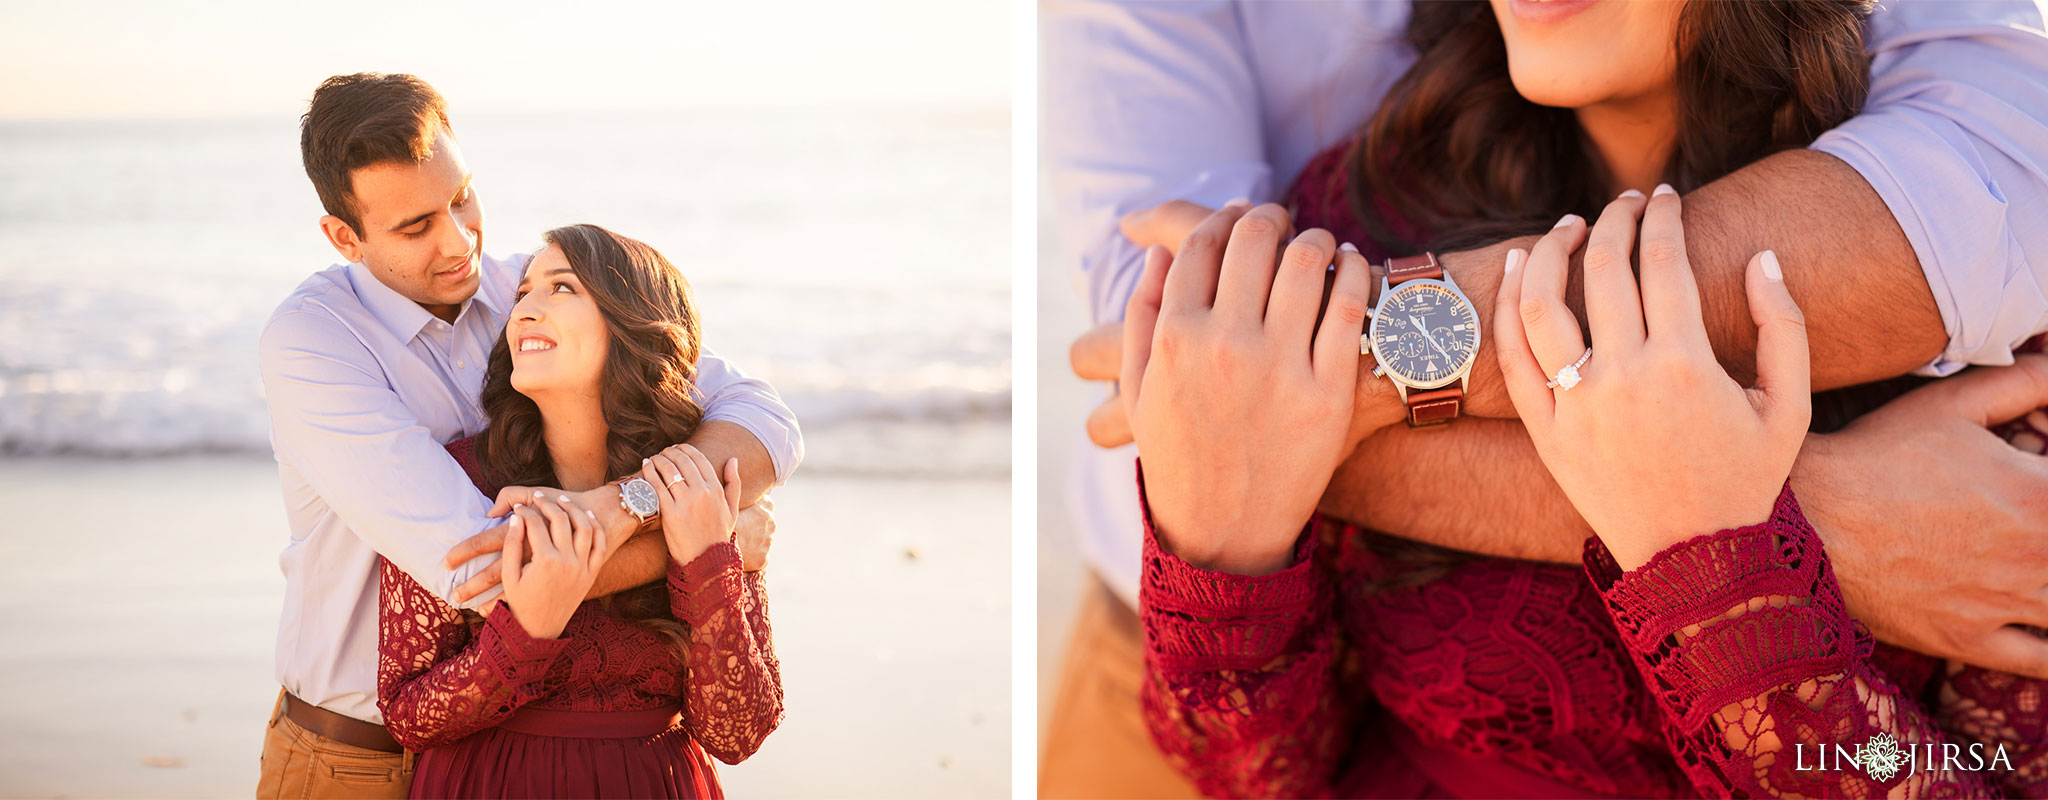 11 orange county engagement photography